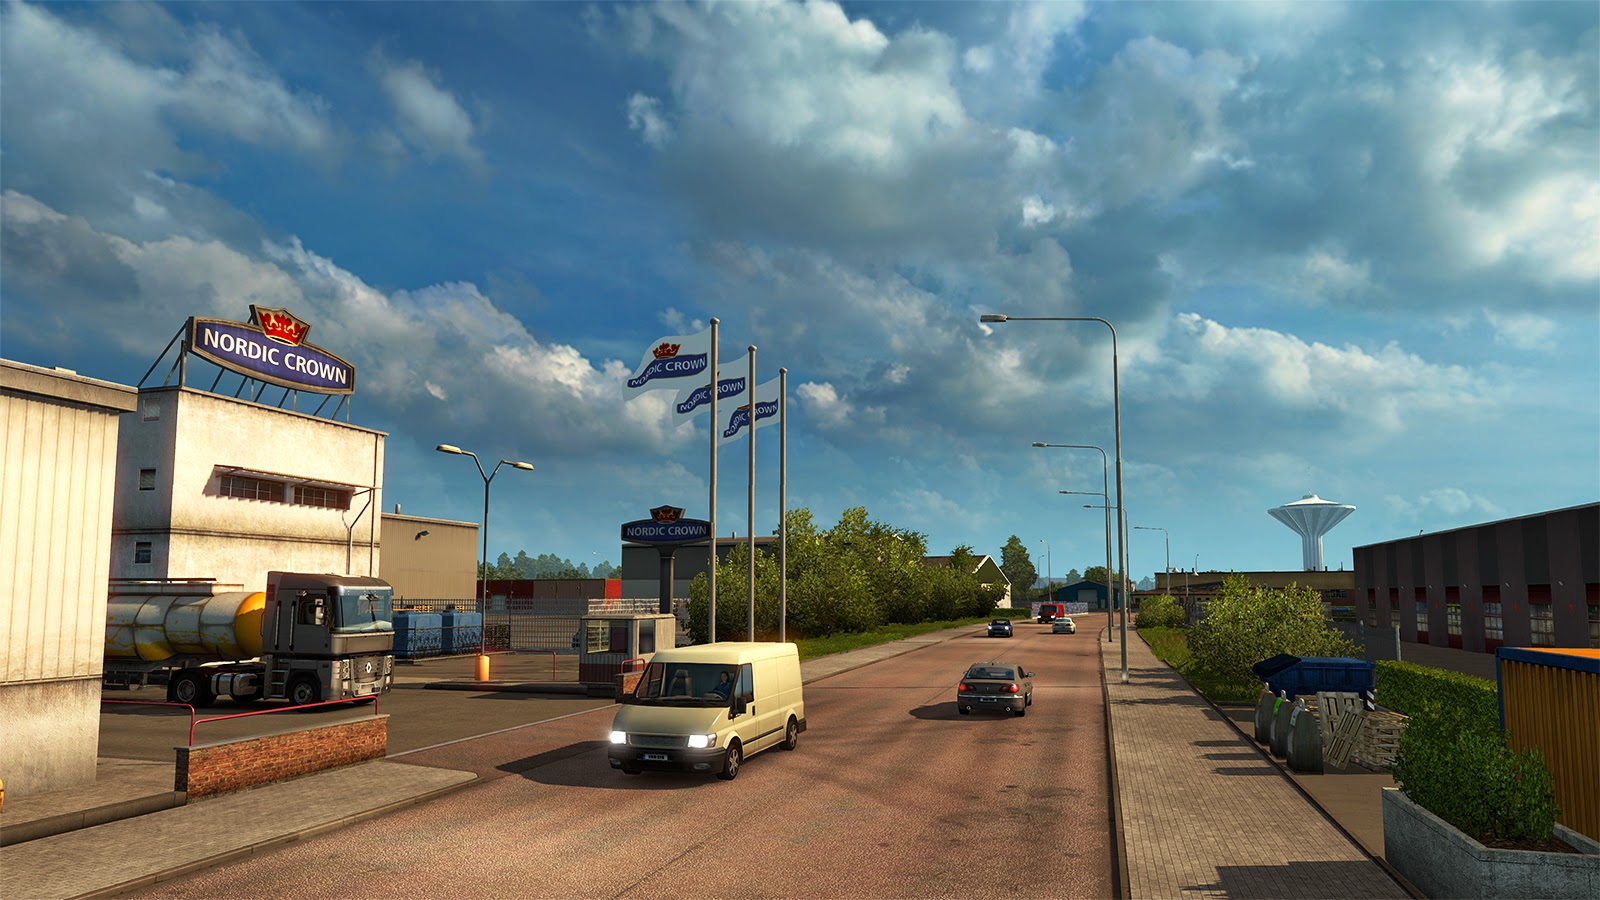 New images with Örebro city from DLC Scandinavia